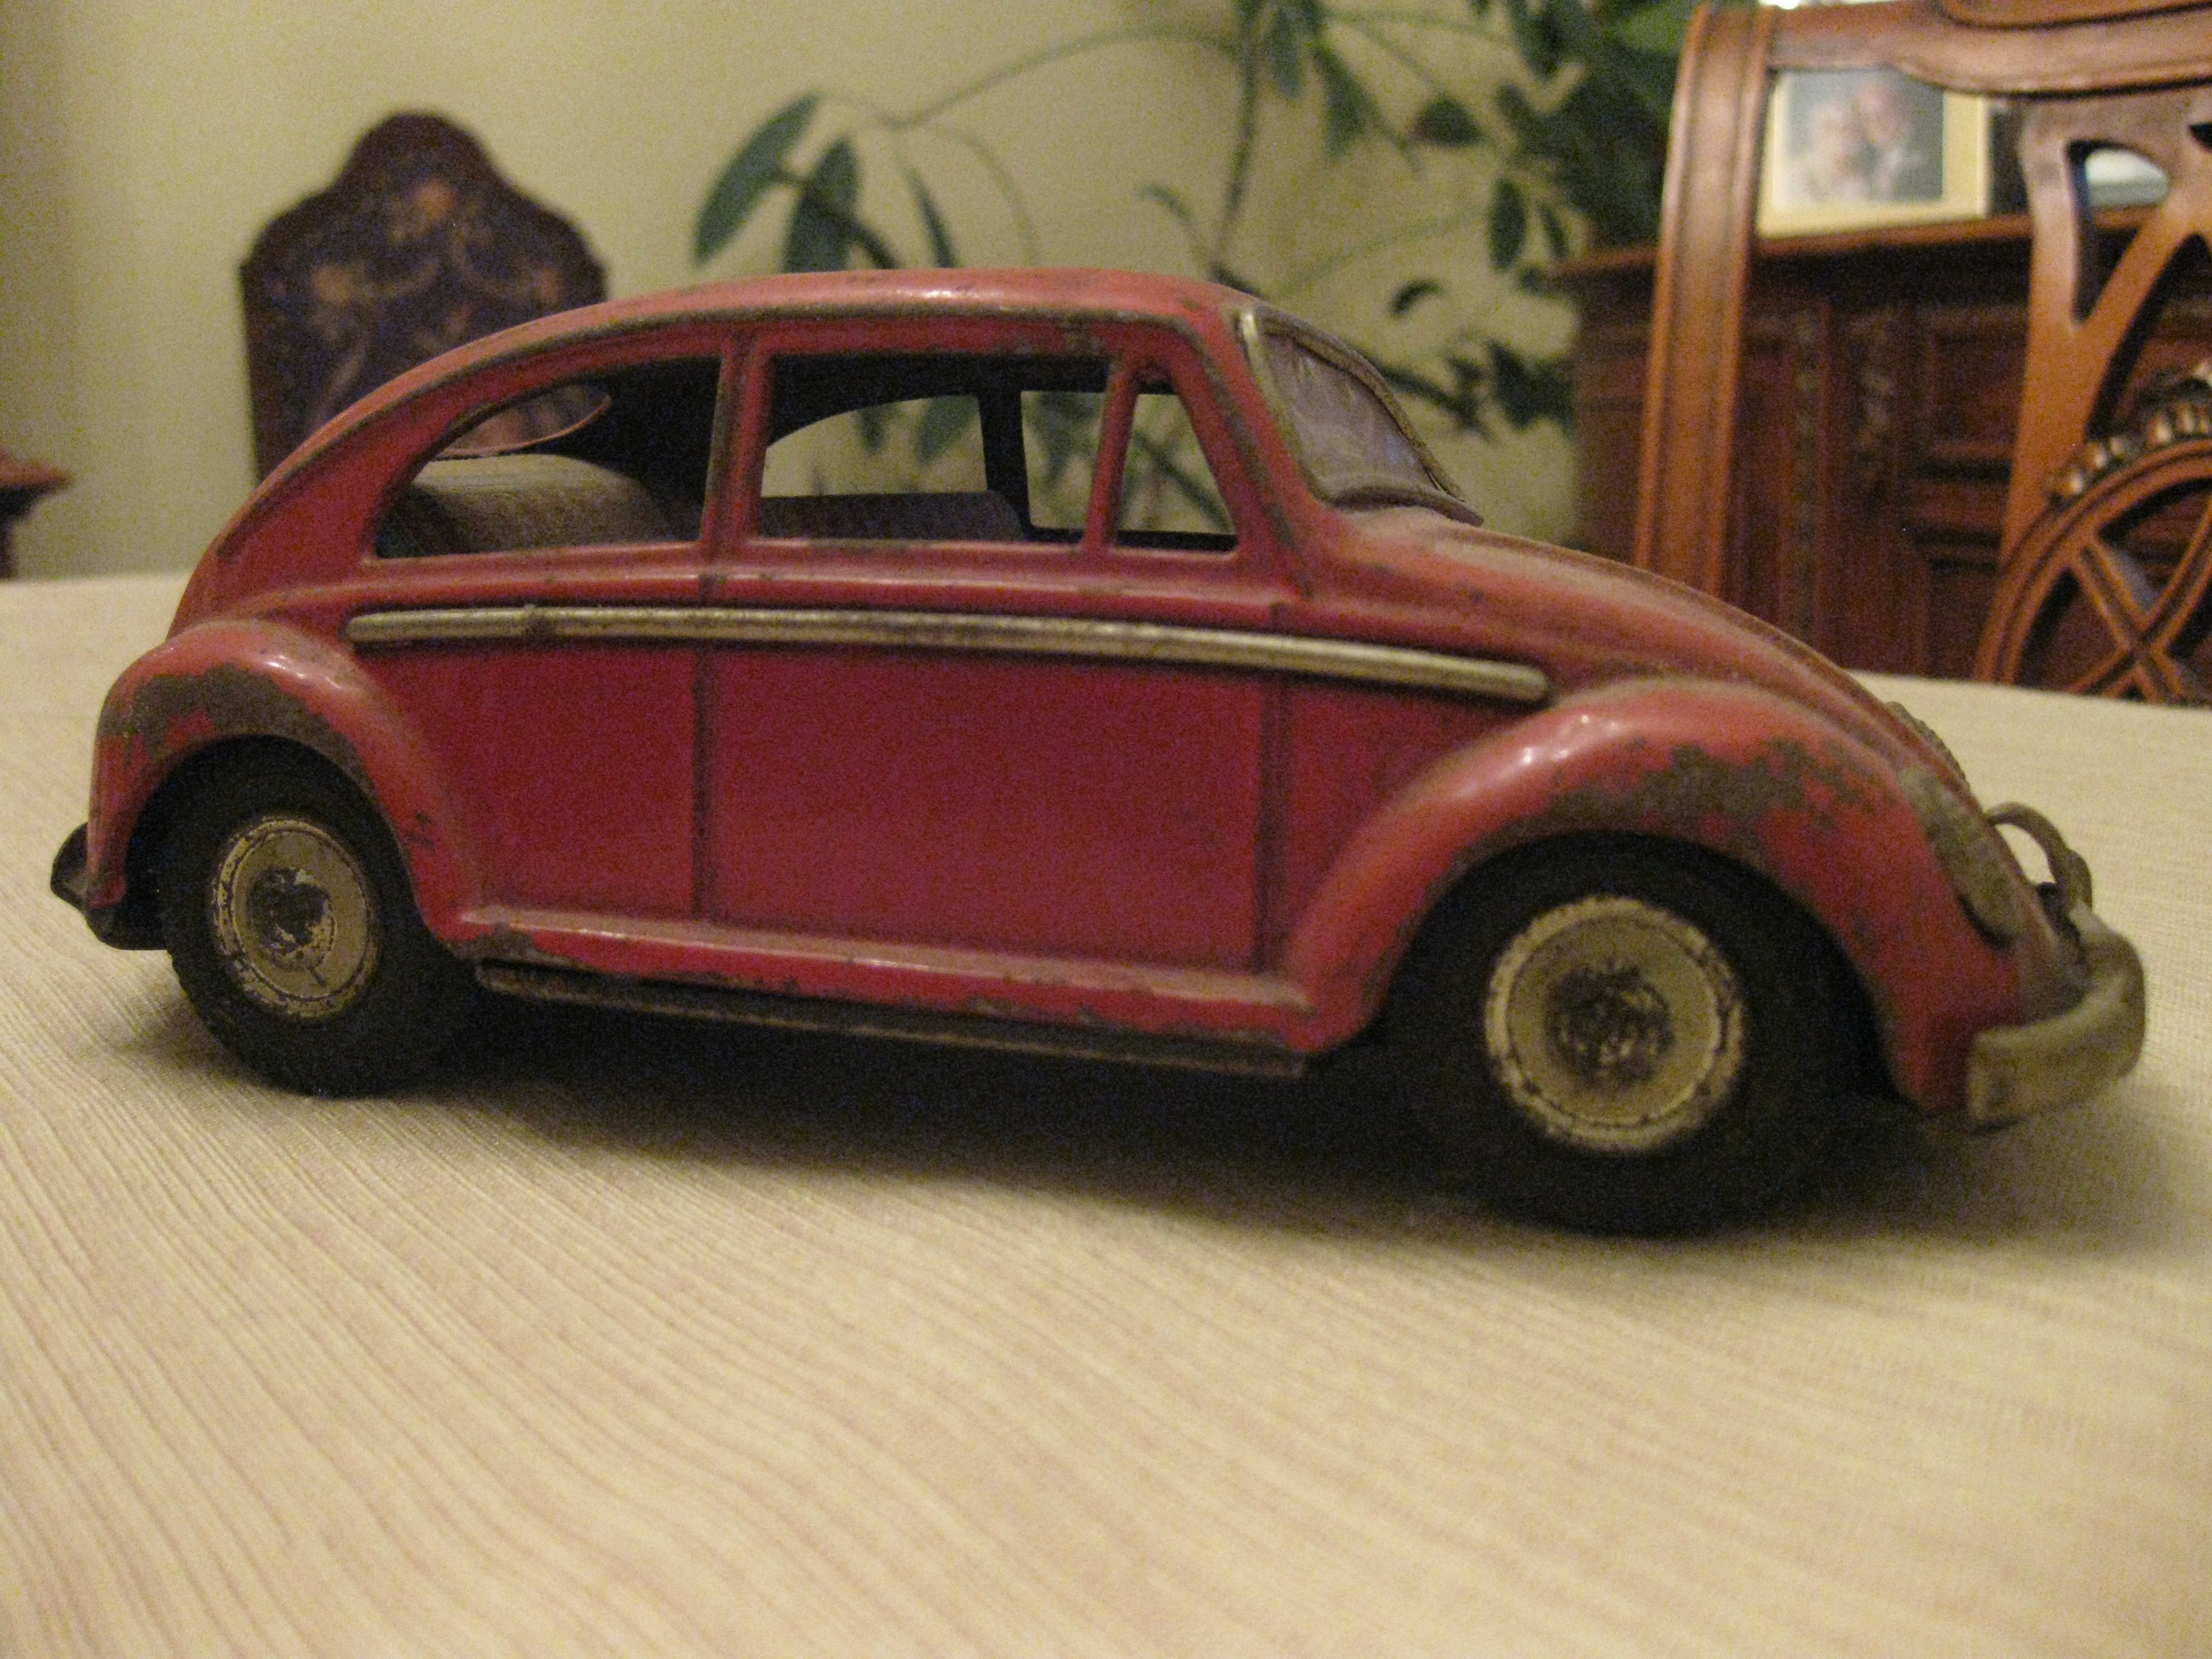 An old 50's beetle toy car made in post war japan